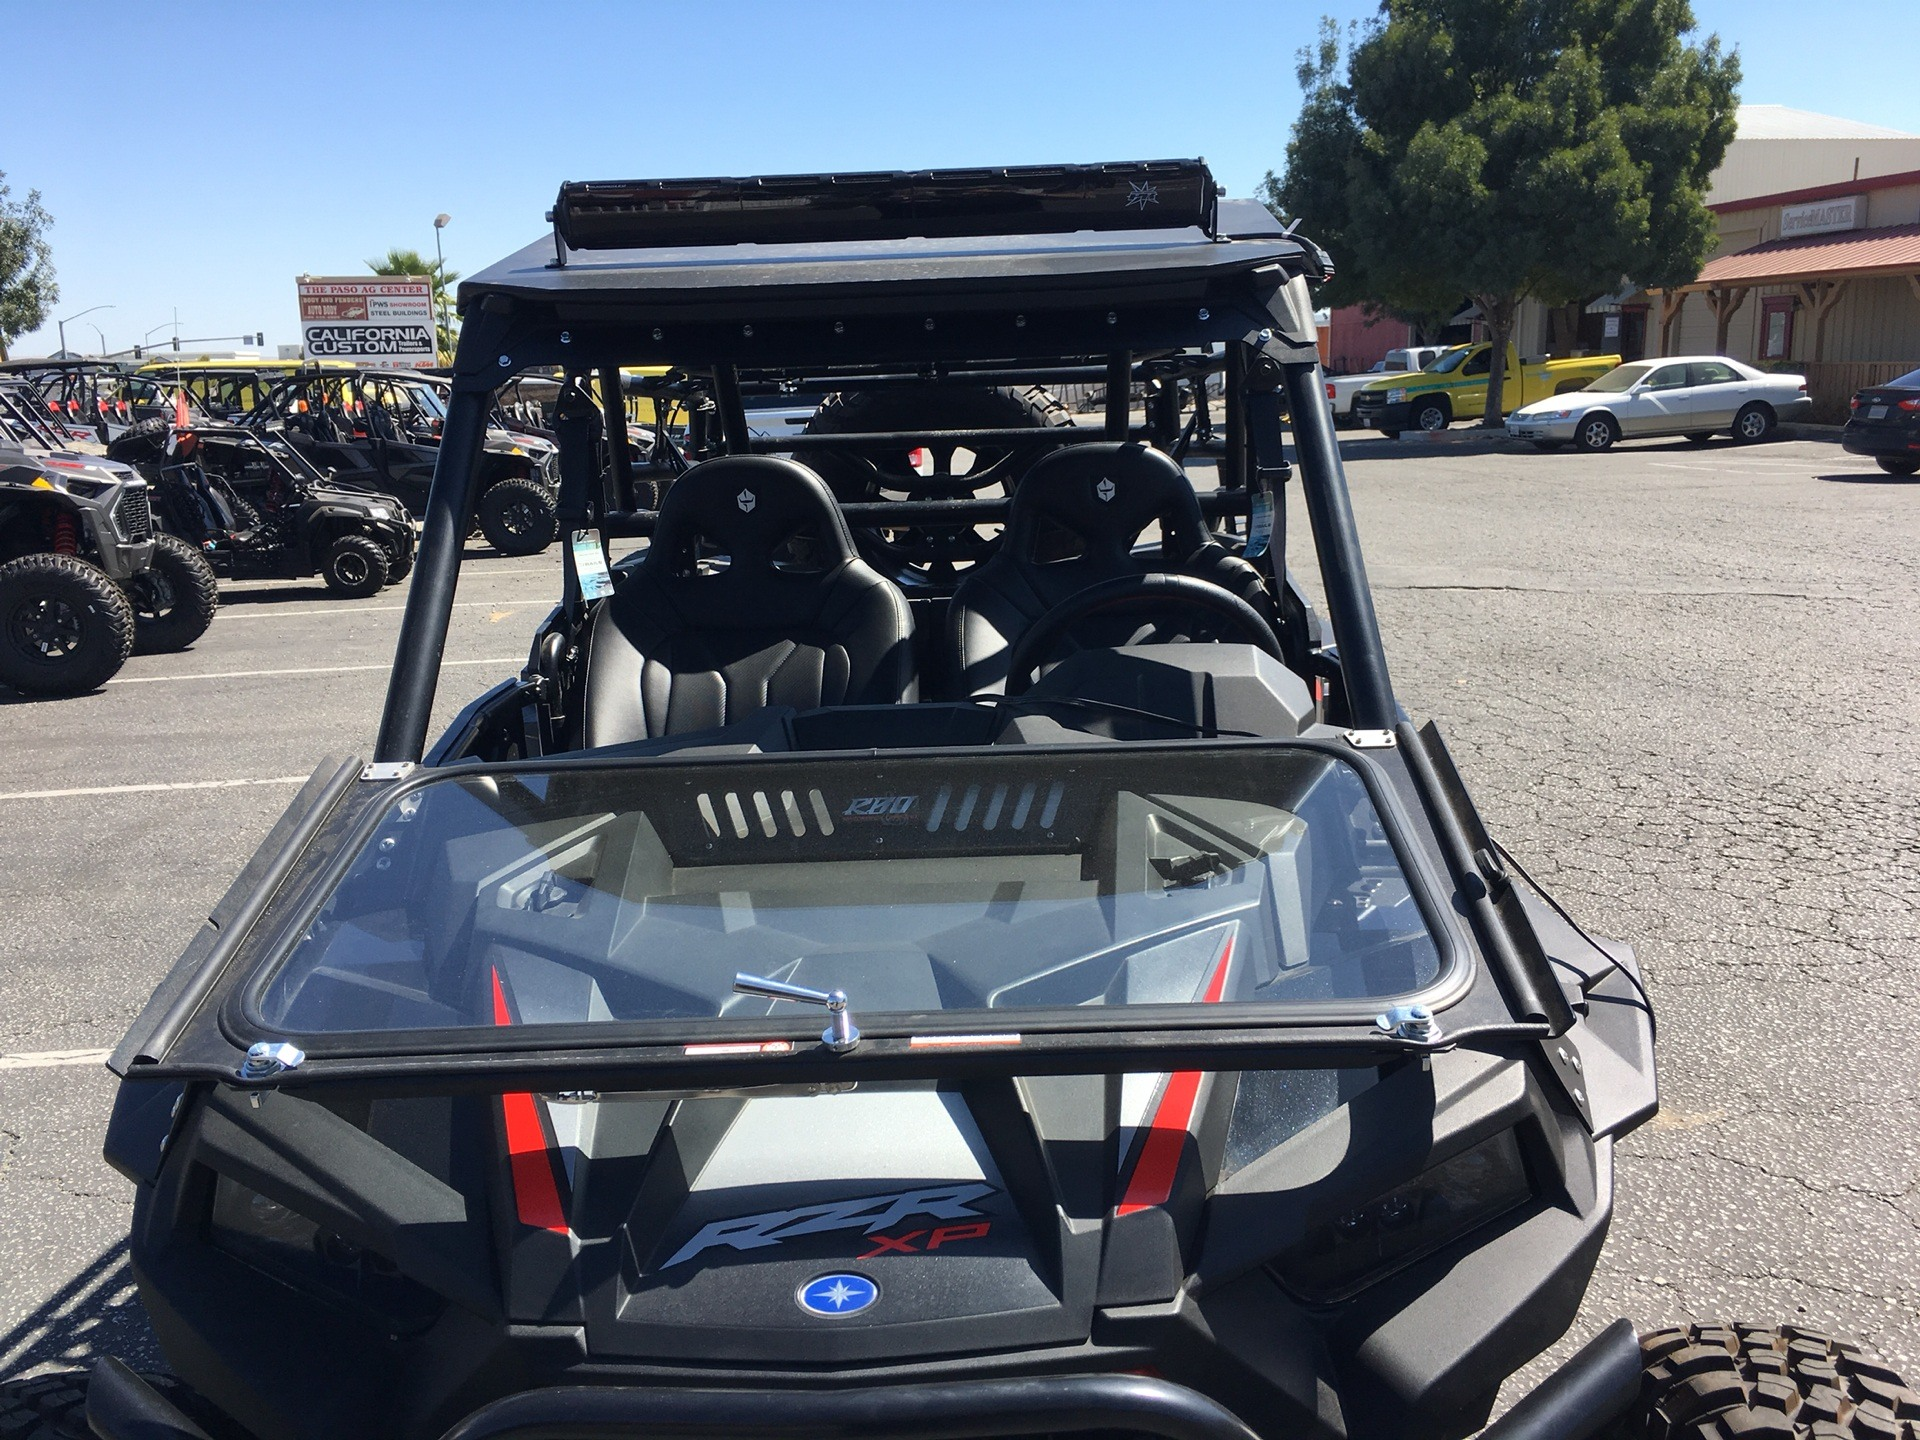 2019 Polaris RZR XP 1000 in Paso Robles, California - Photo 4